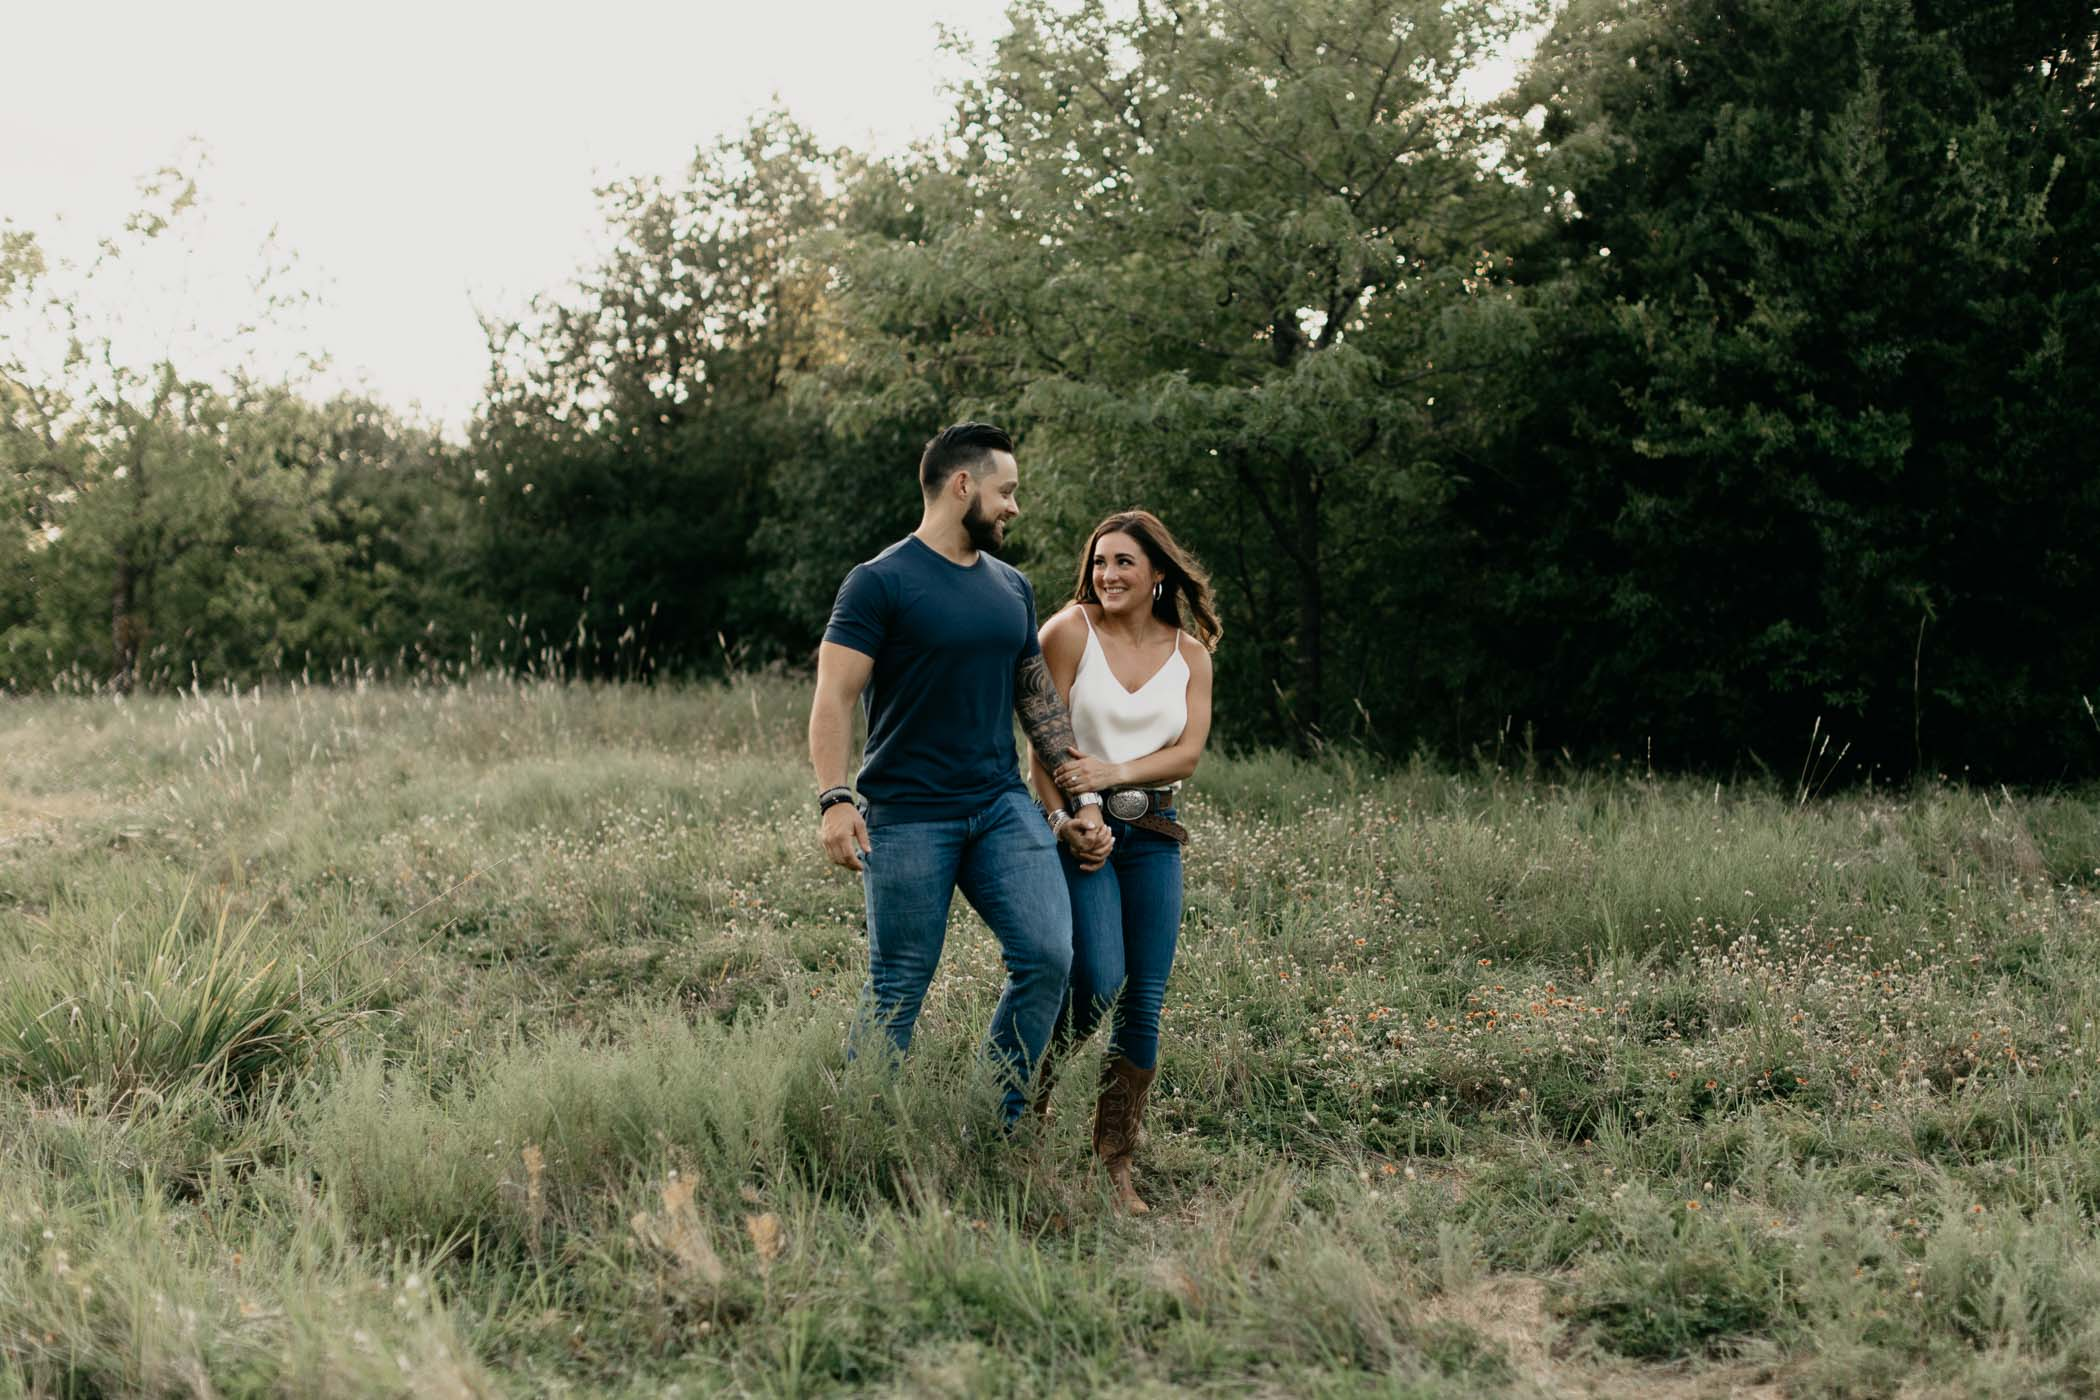 Engaged couple walking through field in DFW during photo session